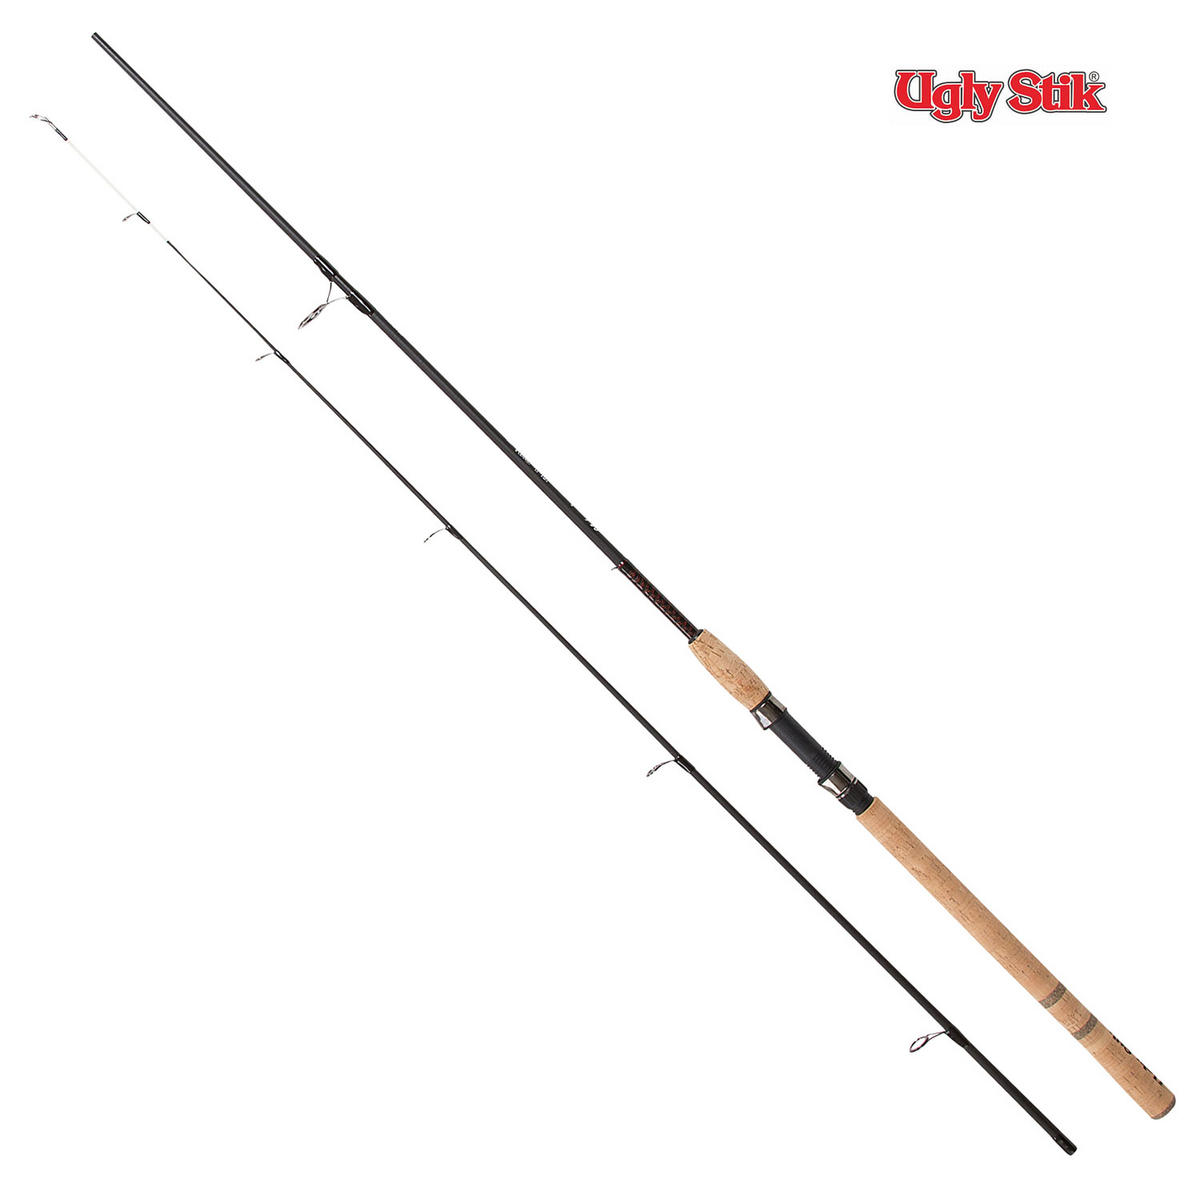 New Shakespeare Ugly Stik ELITE Spinning Rods - All Models Available